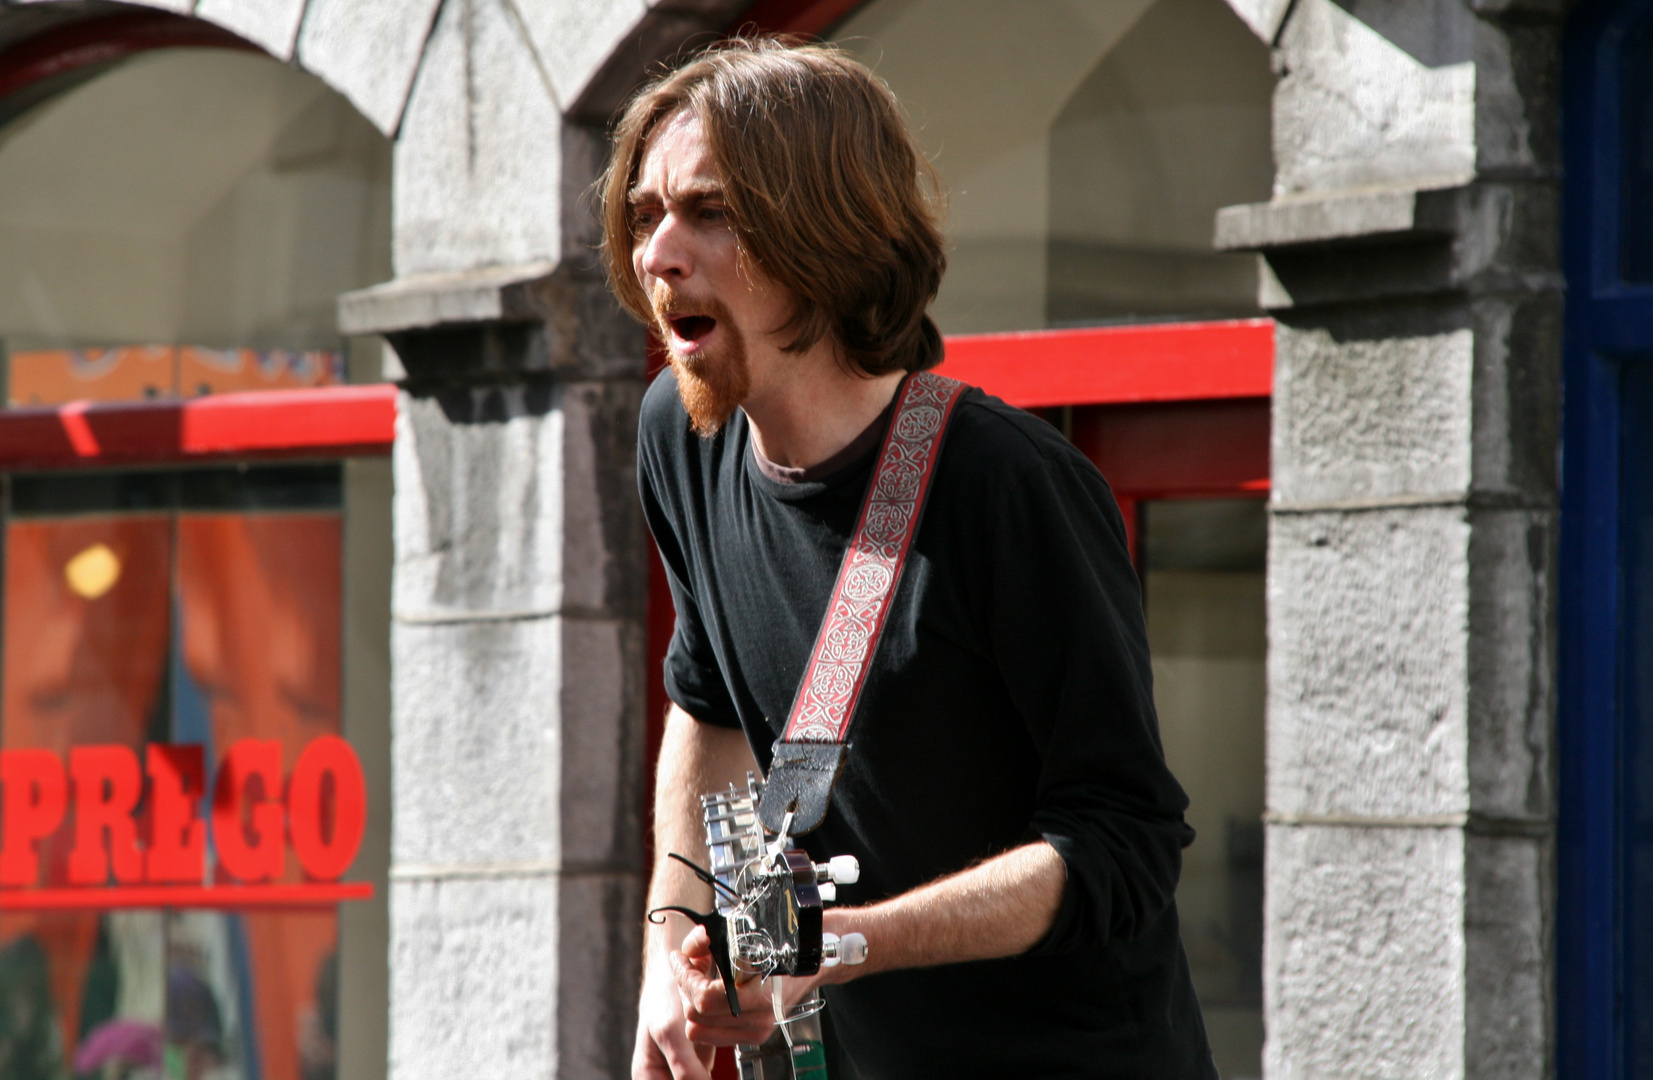 Galway Guy 2